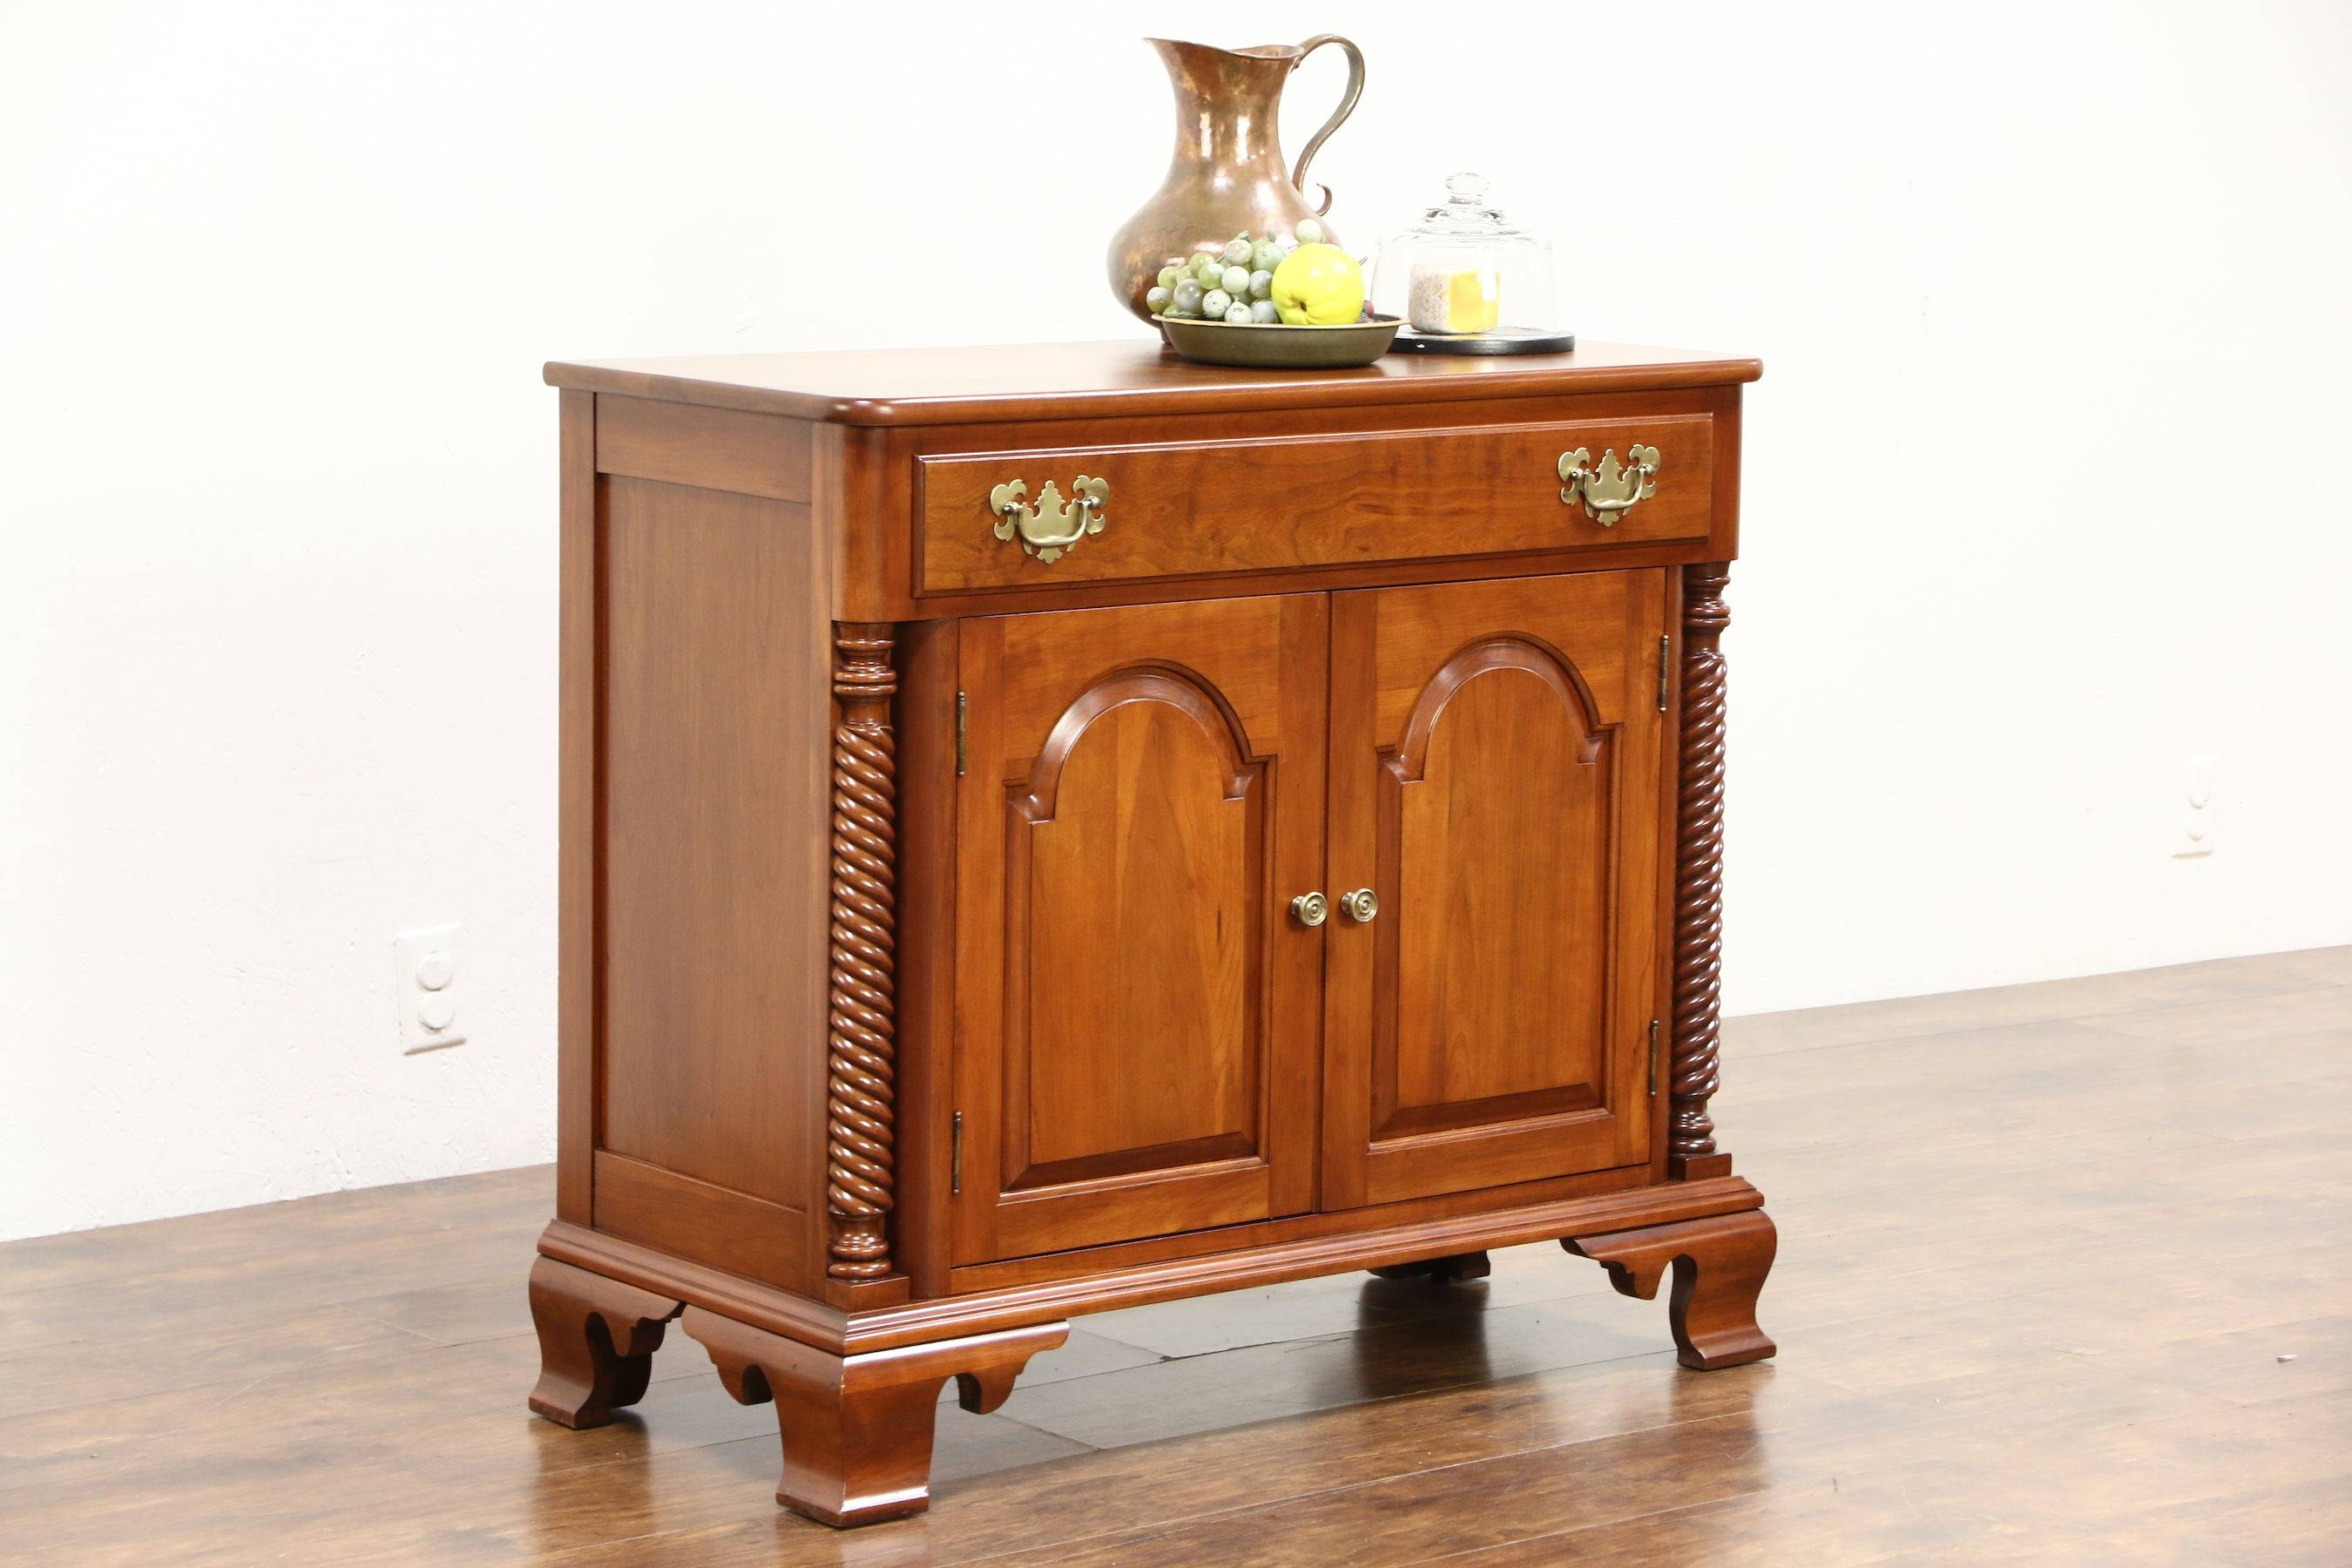 Cherry Small Vintage Sideboard, Server Or Console Cabinet, Signed throughout Small Sideboard Cabinets (Image 5 of 30)